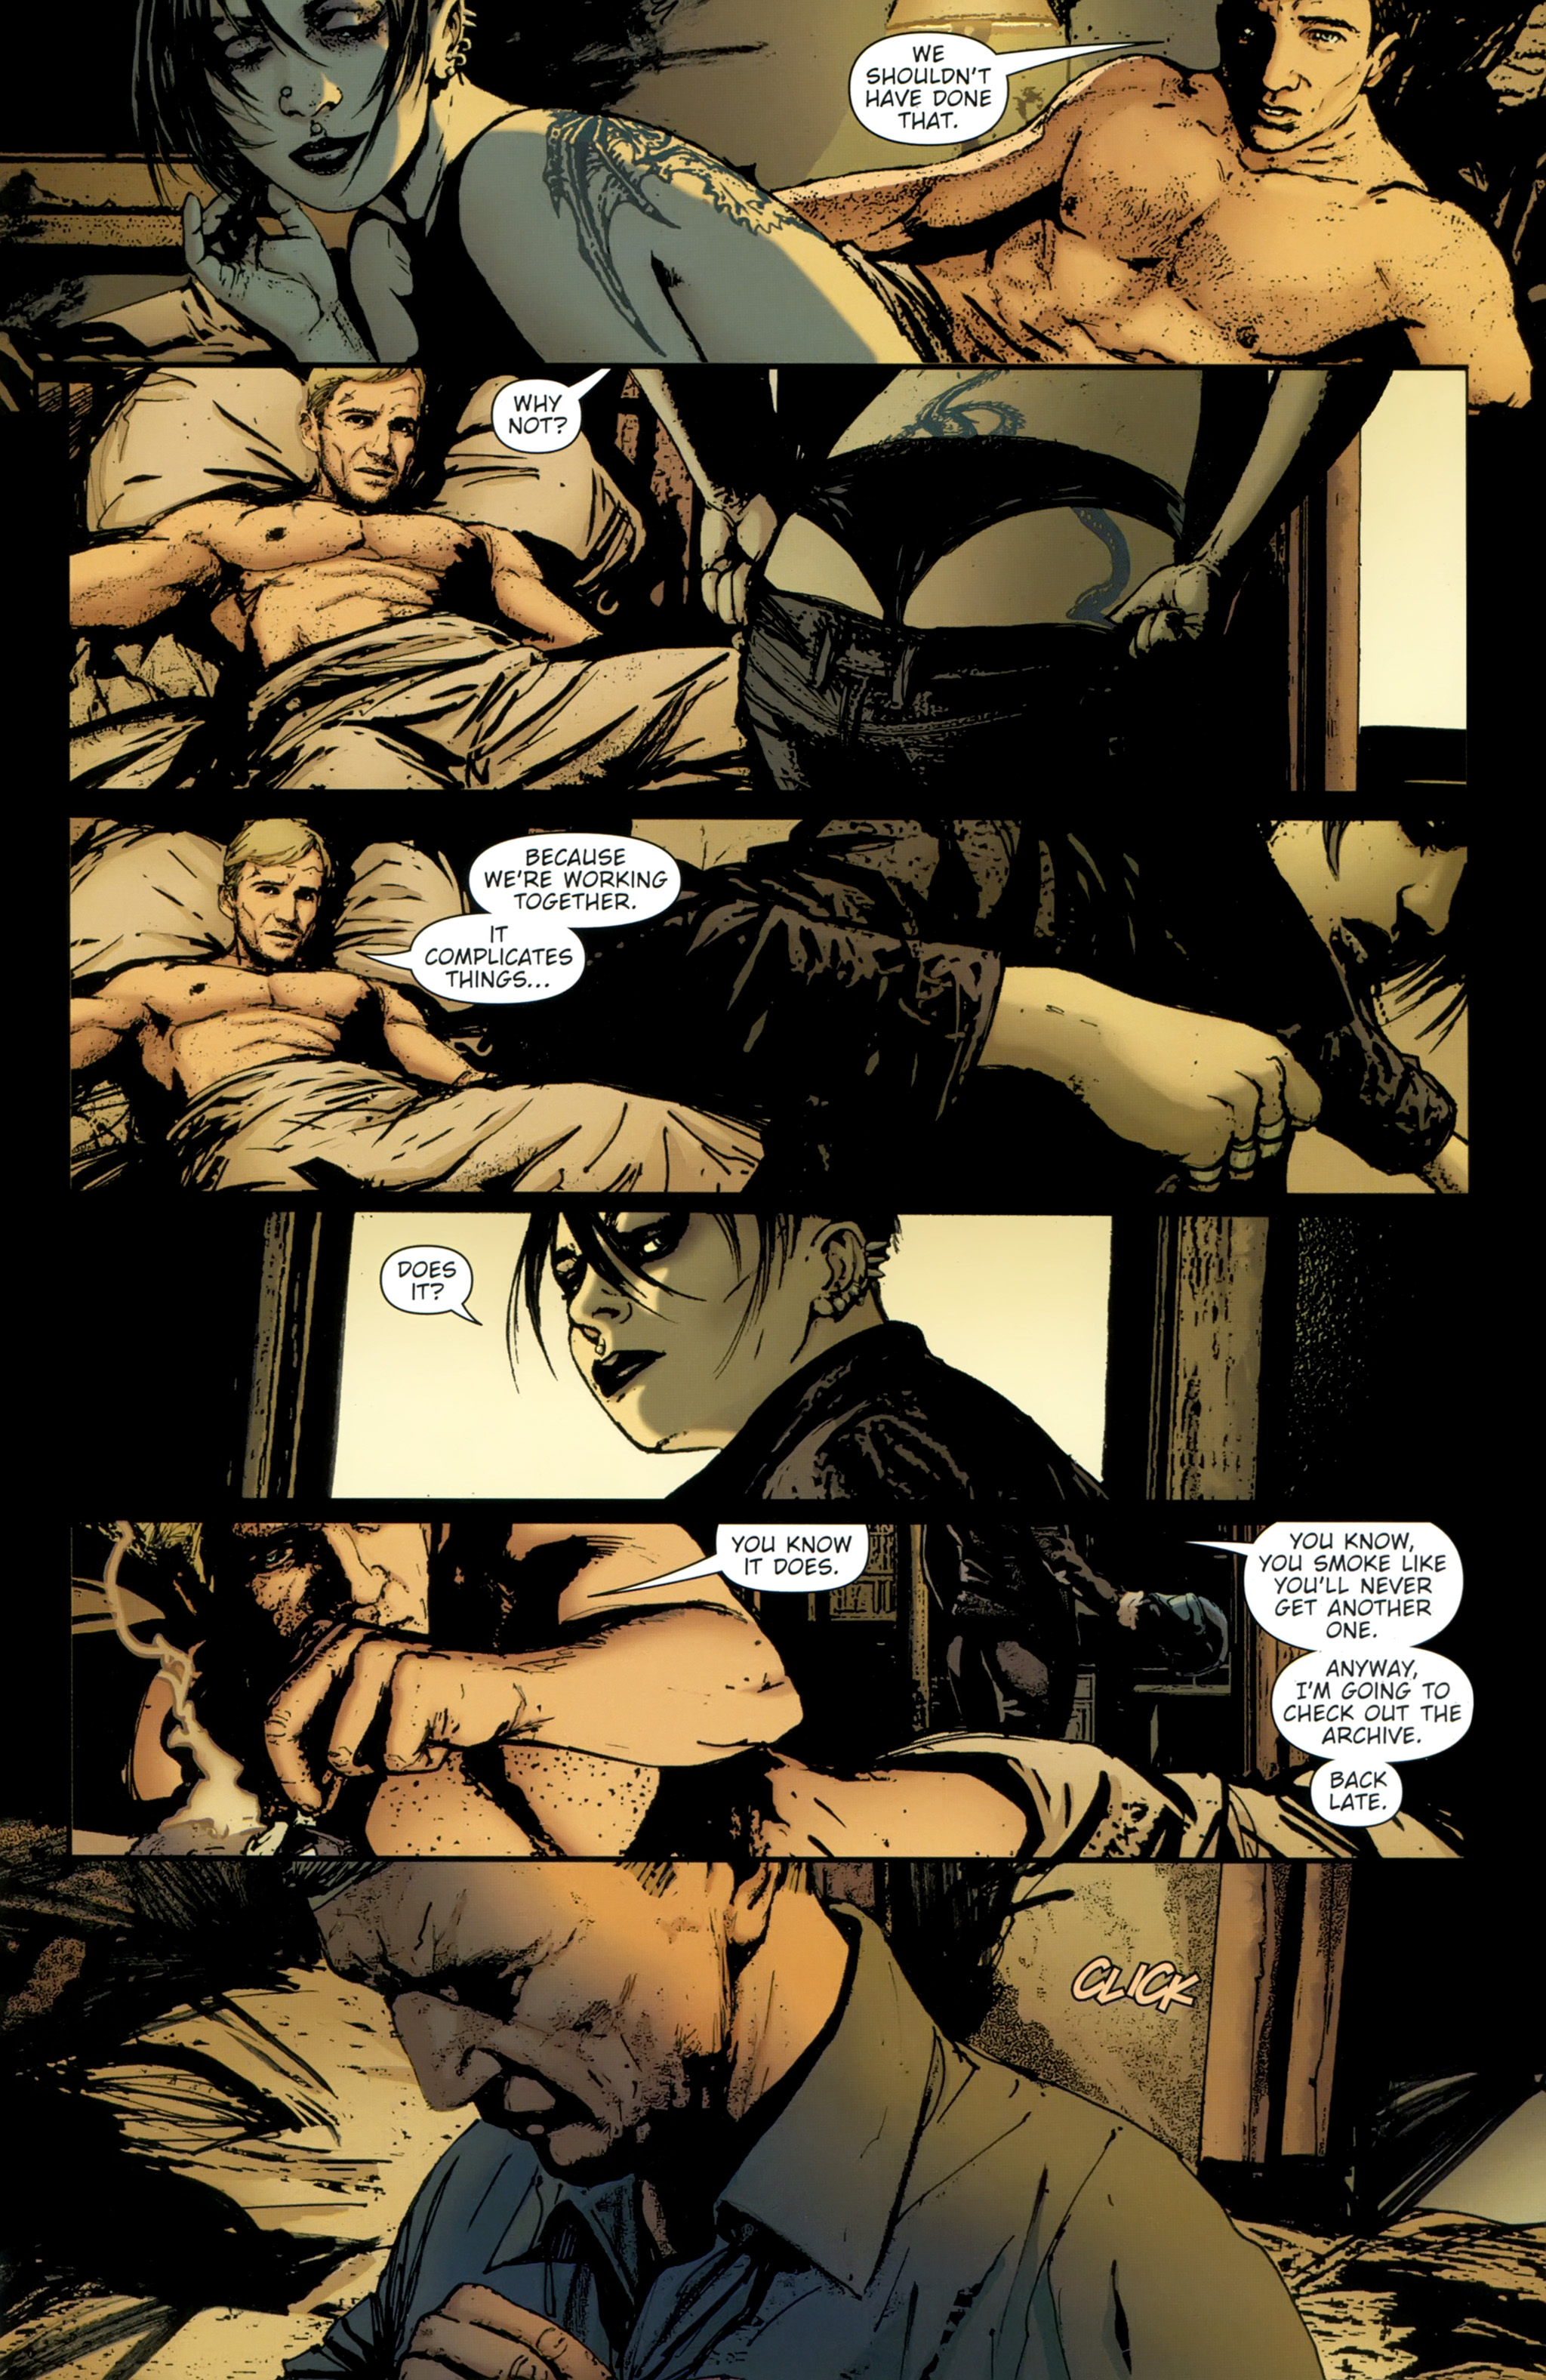 Read online The Girl With the Dragon Tattoo comic -  Issue # TPB 2 - 73